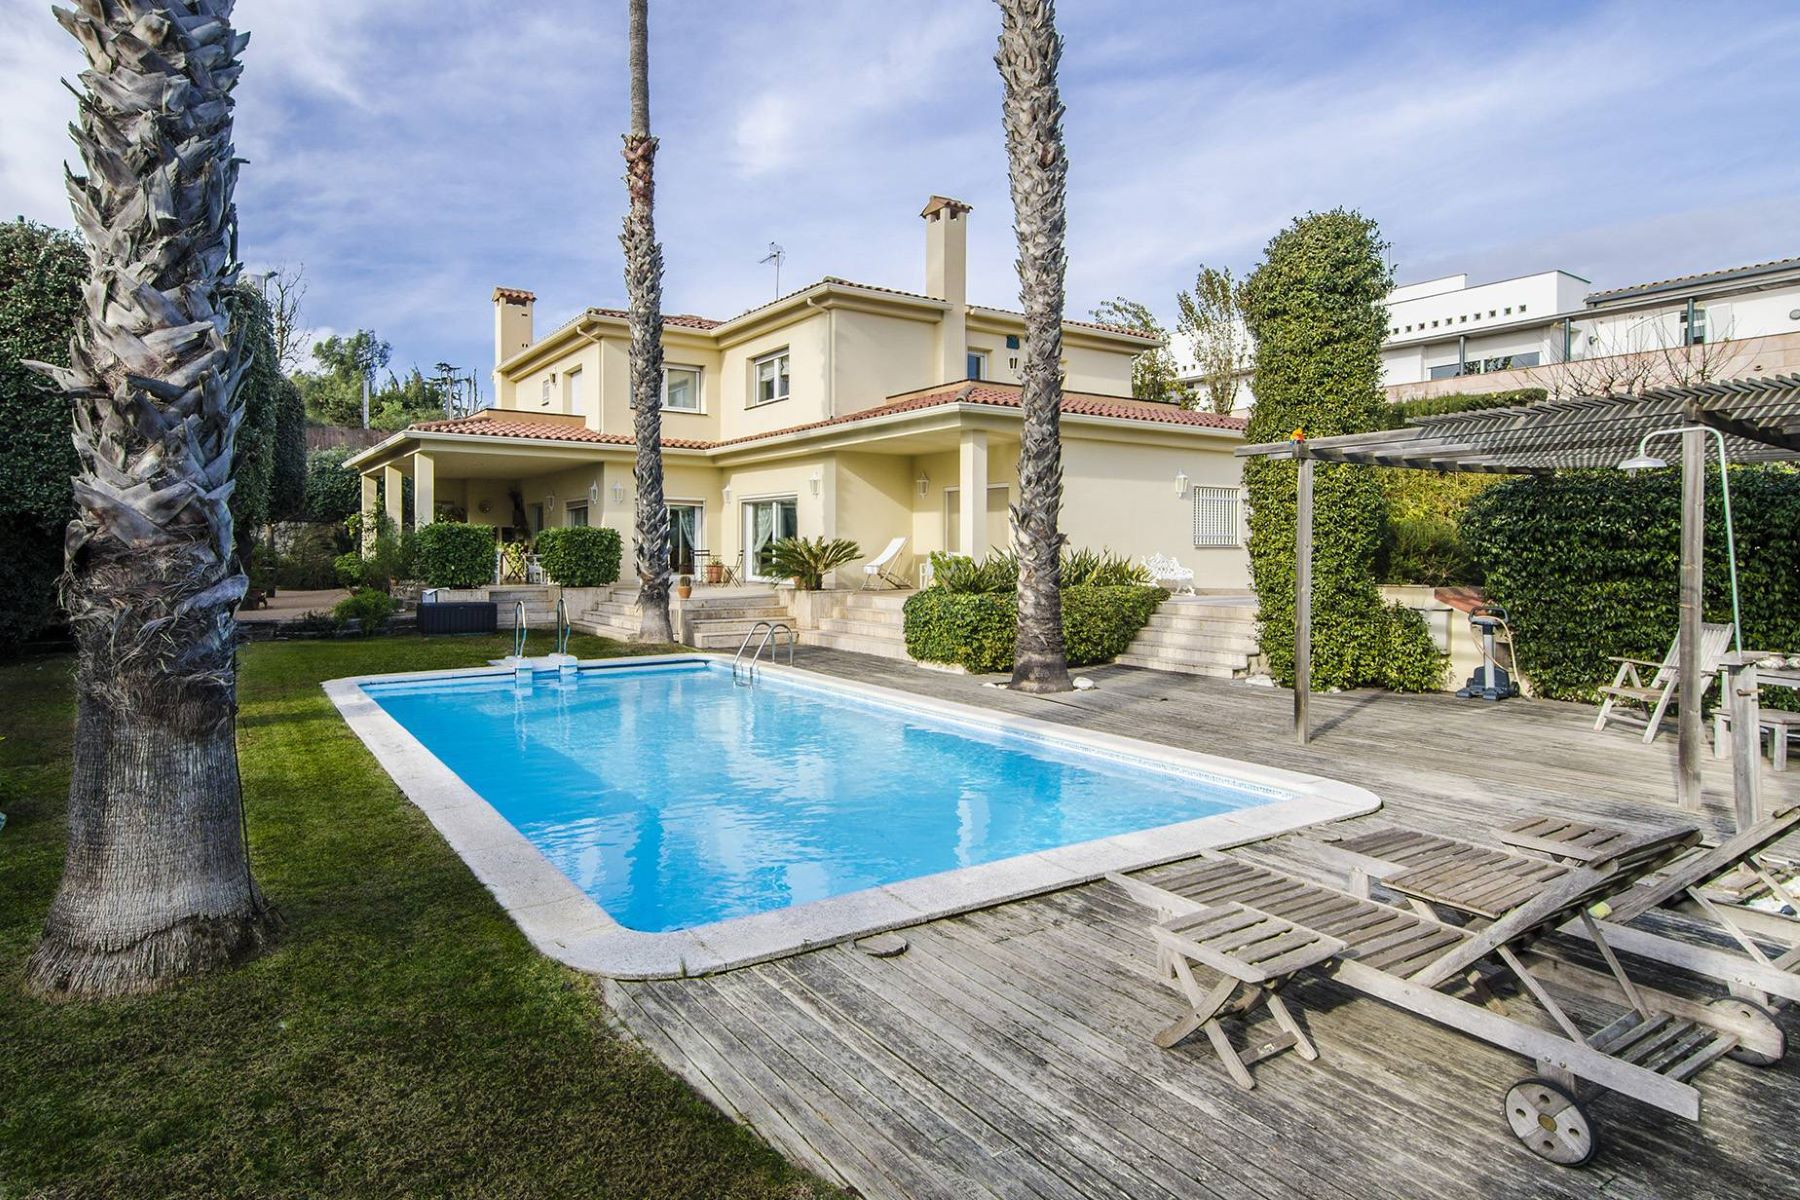 Single Family Home for Sale at A Cozy Luxury Property in Two Steps From the Sea, Can Teixido Alella, Barcelona, 08328 Spain